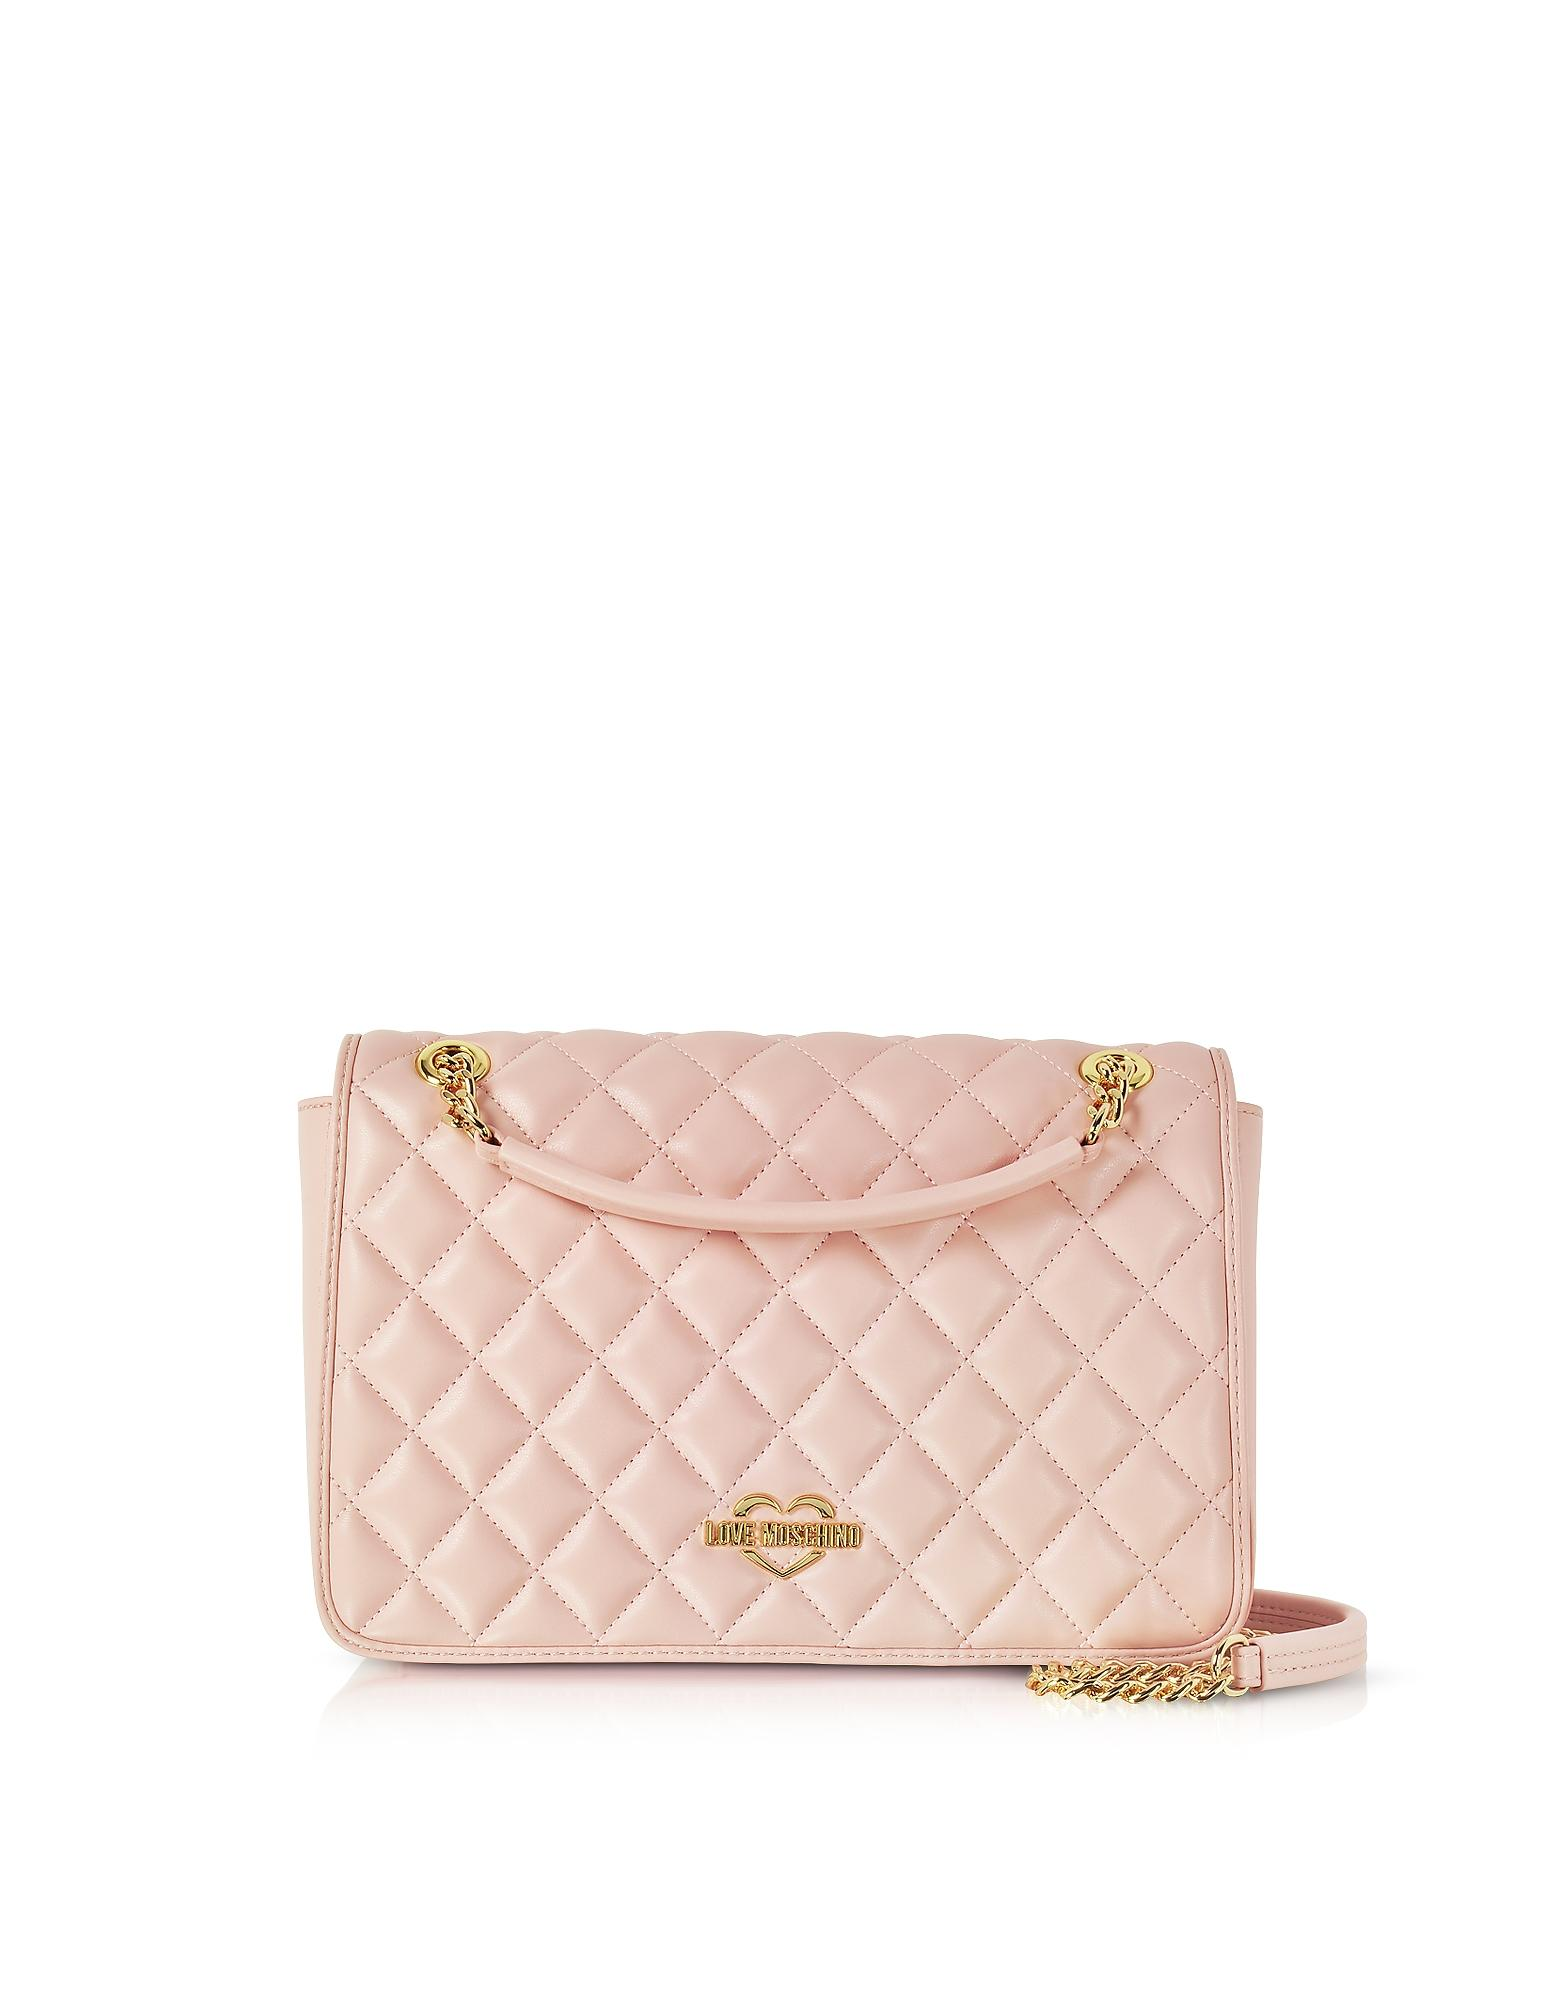 ebd4d8ce45 Love Moschino Pink Superquilted Eco-Leather Shoulder Bag | ModeSens